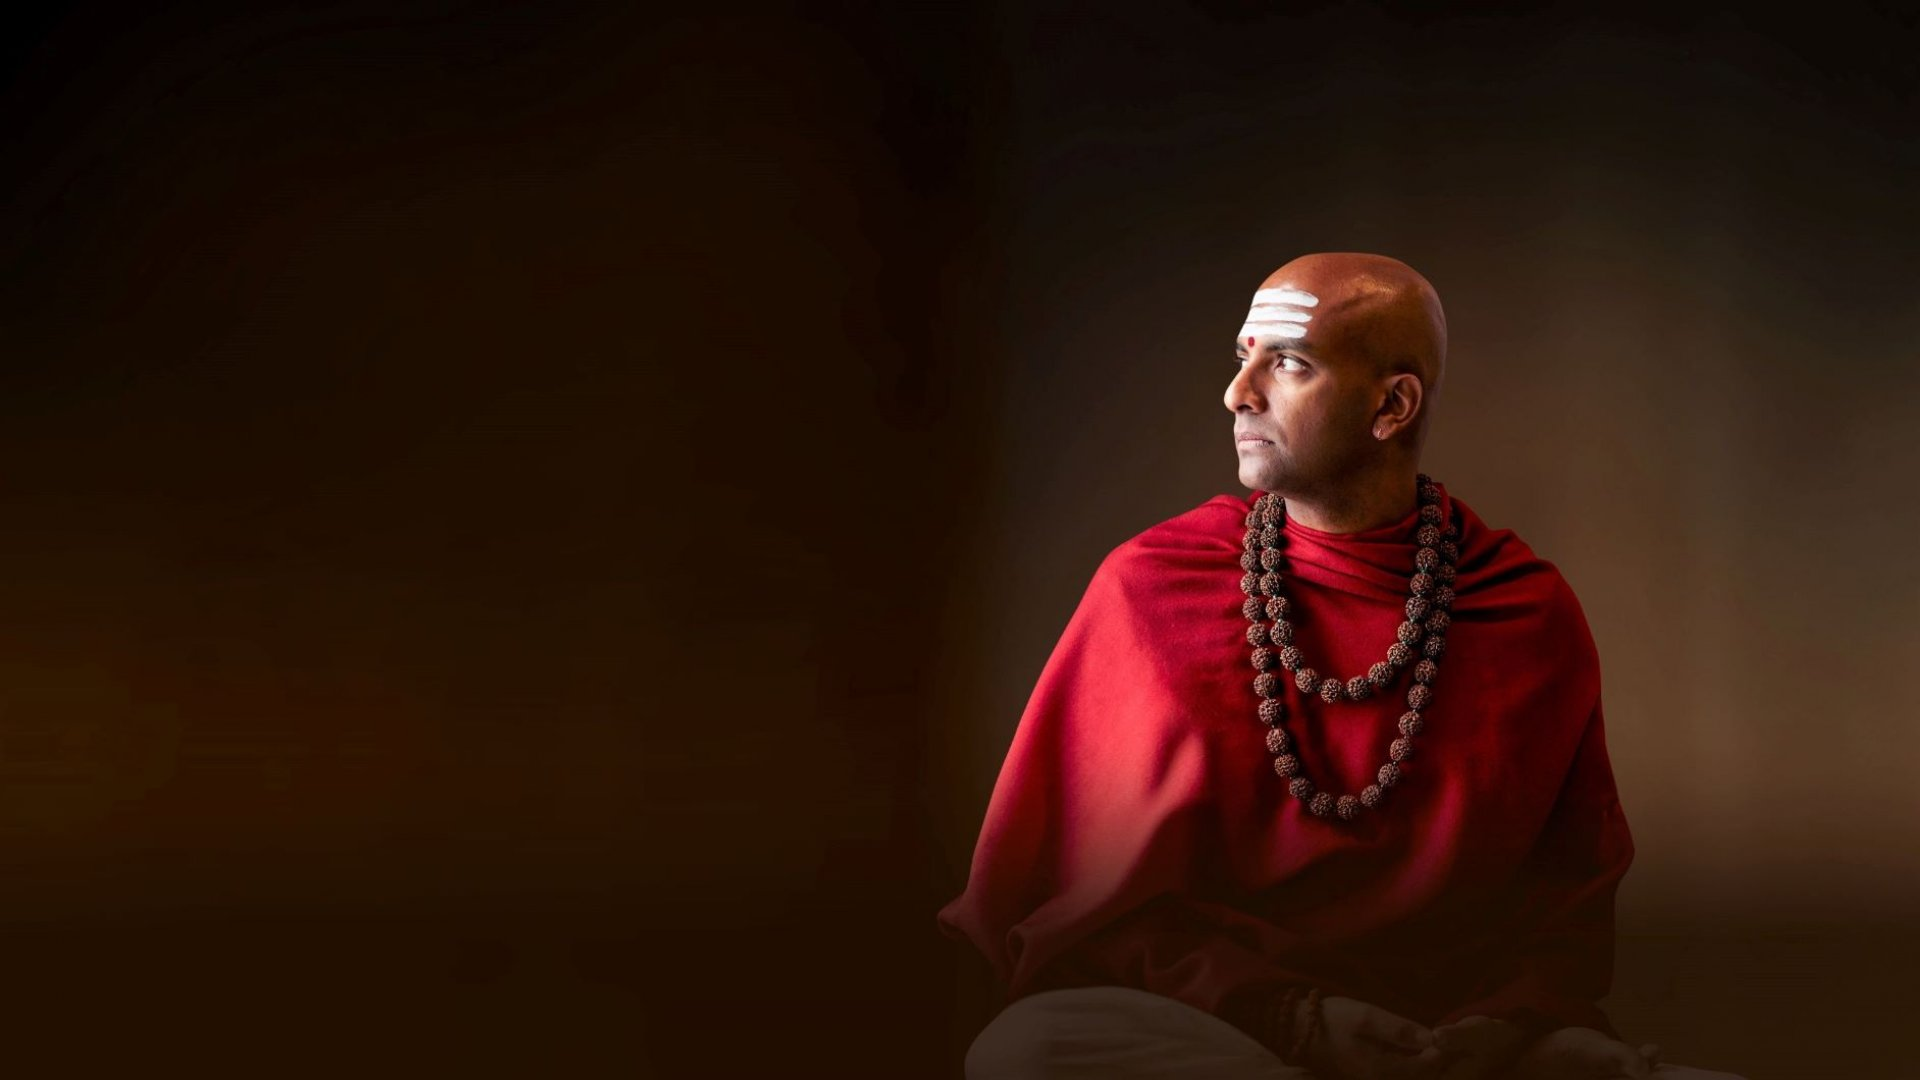 Dandapani, a former monk, shares how to safeguard your mental health during a crisis.